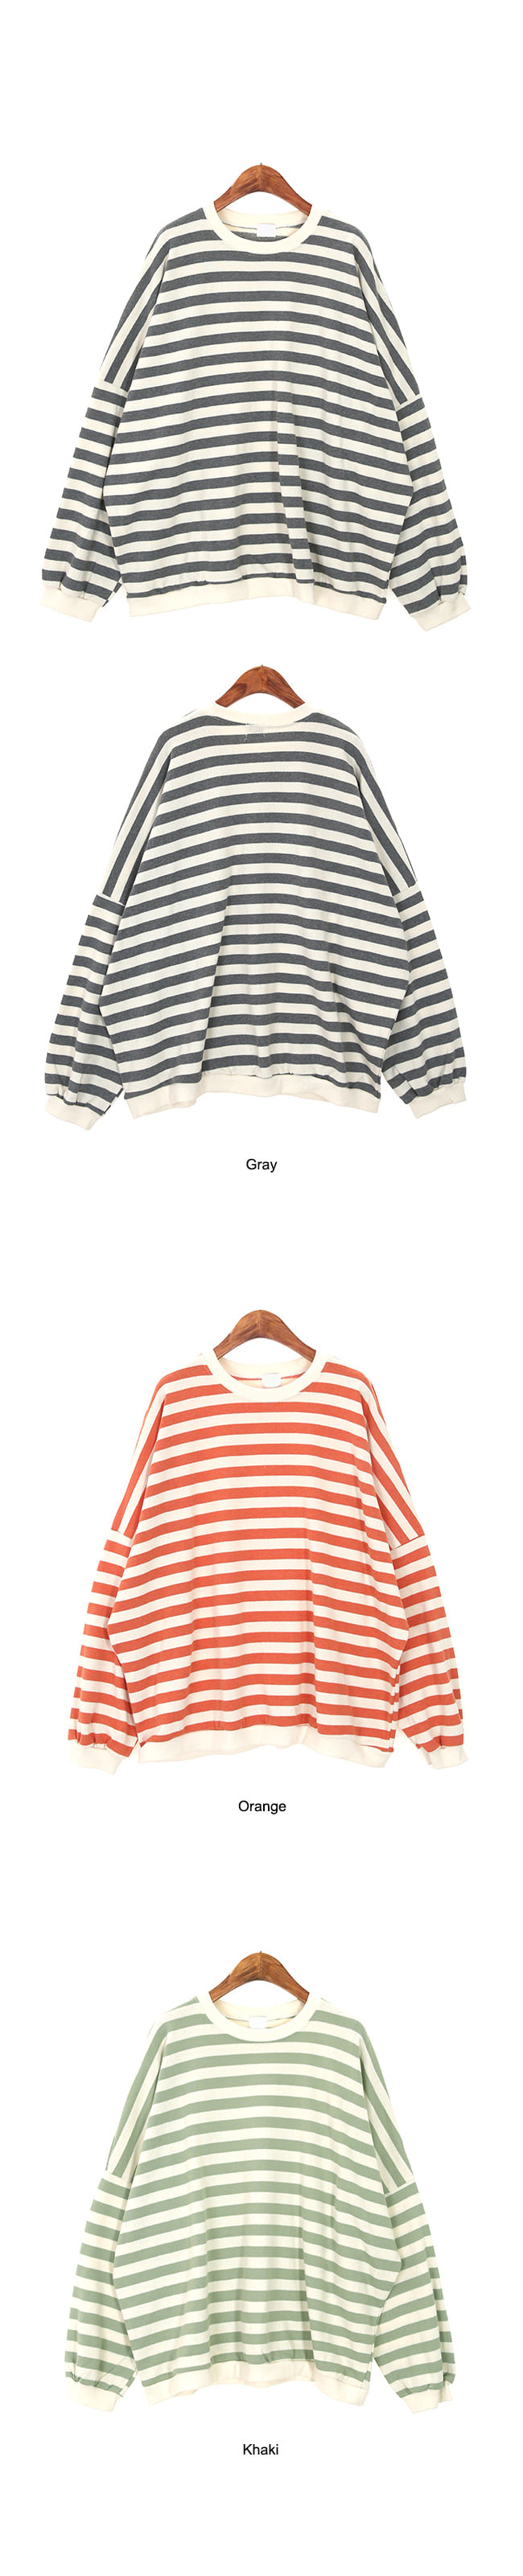 Boxy-fit striped man-to-man